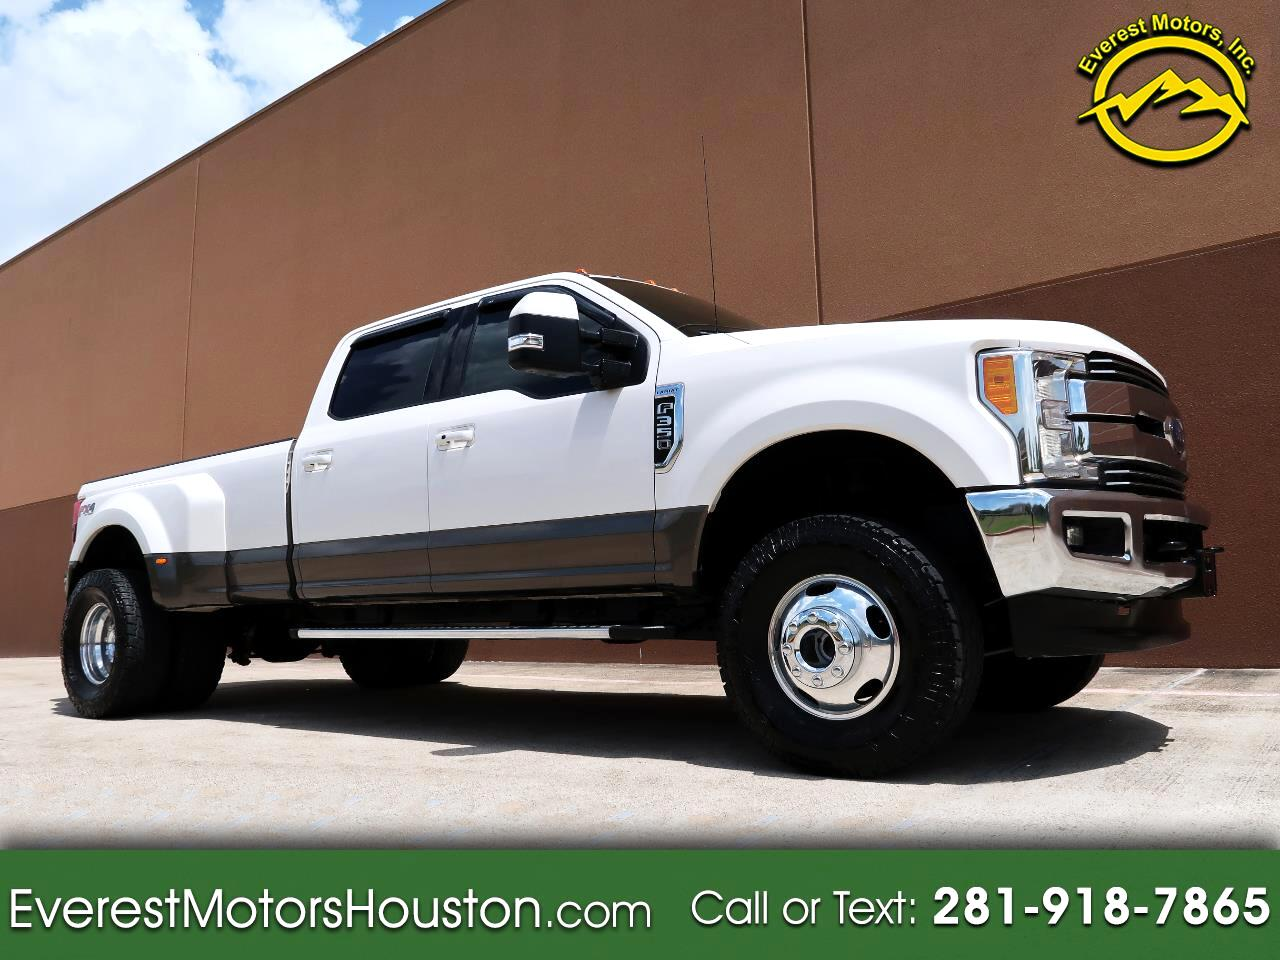 Used Cars for Sale Houston TX 77063 Everest Motors Inc